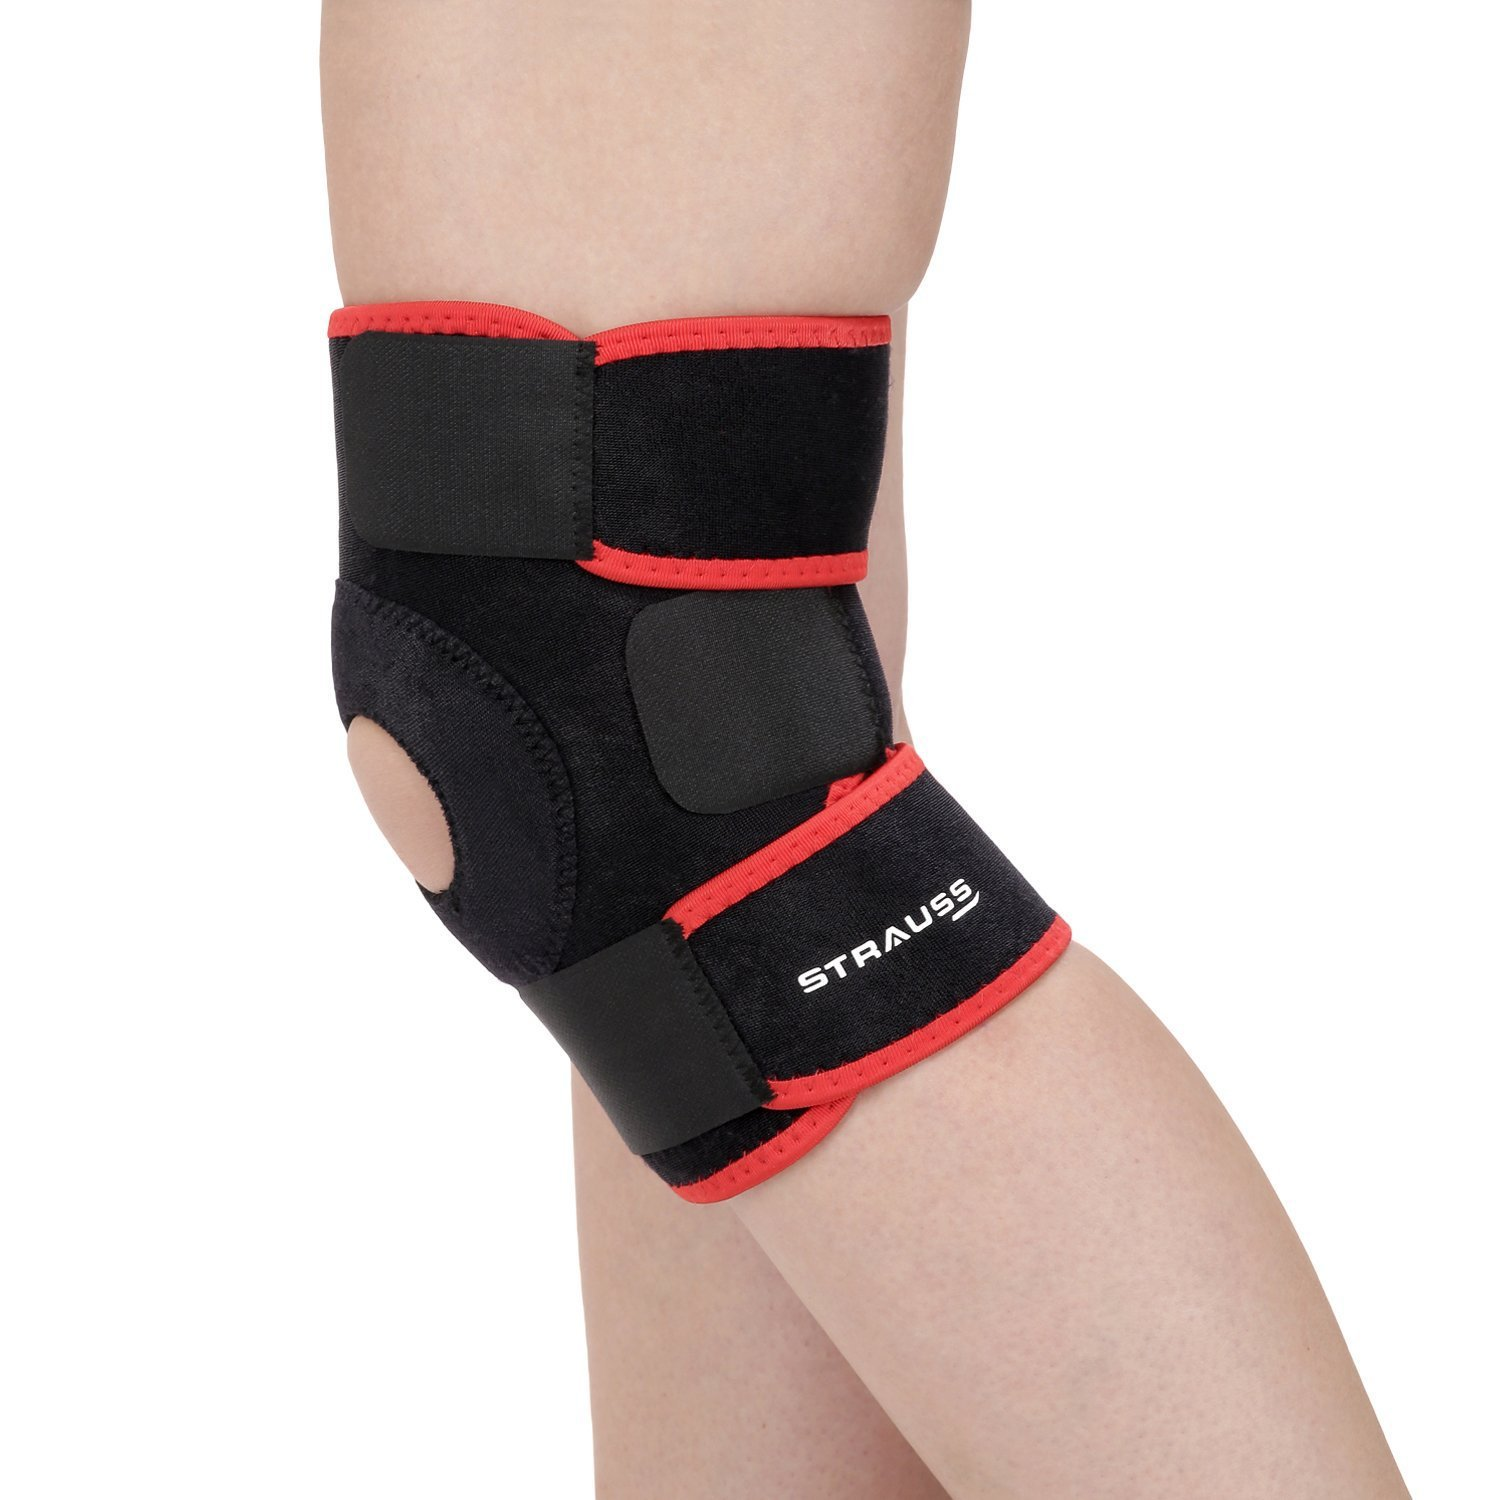 Get Strauss Adjustable Knee Support Patella, Free Size (Black) at Rs 363 | Amazon Offer